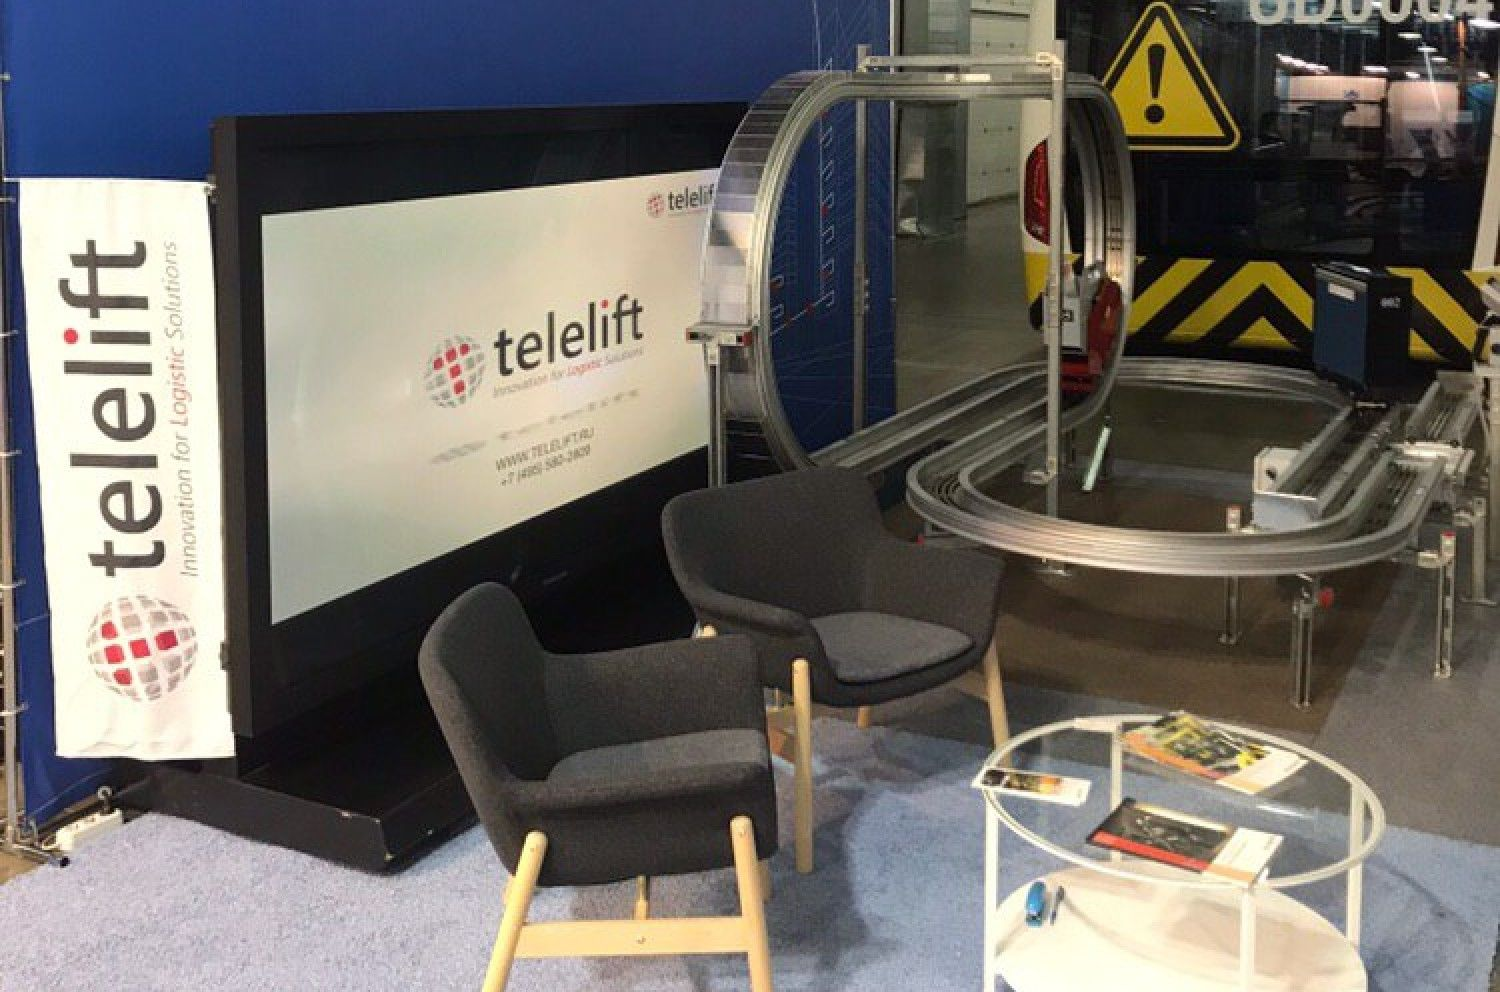 Telelift at NAIS exhibition in Moscow